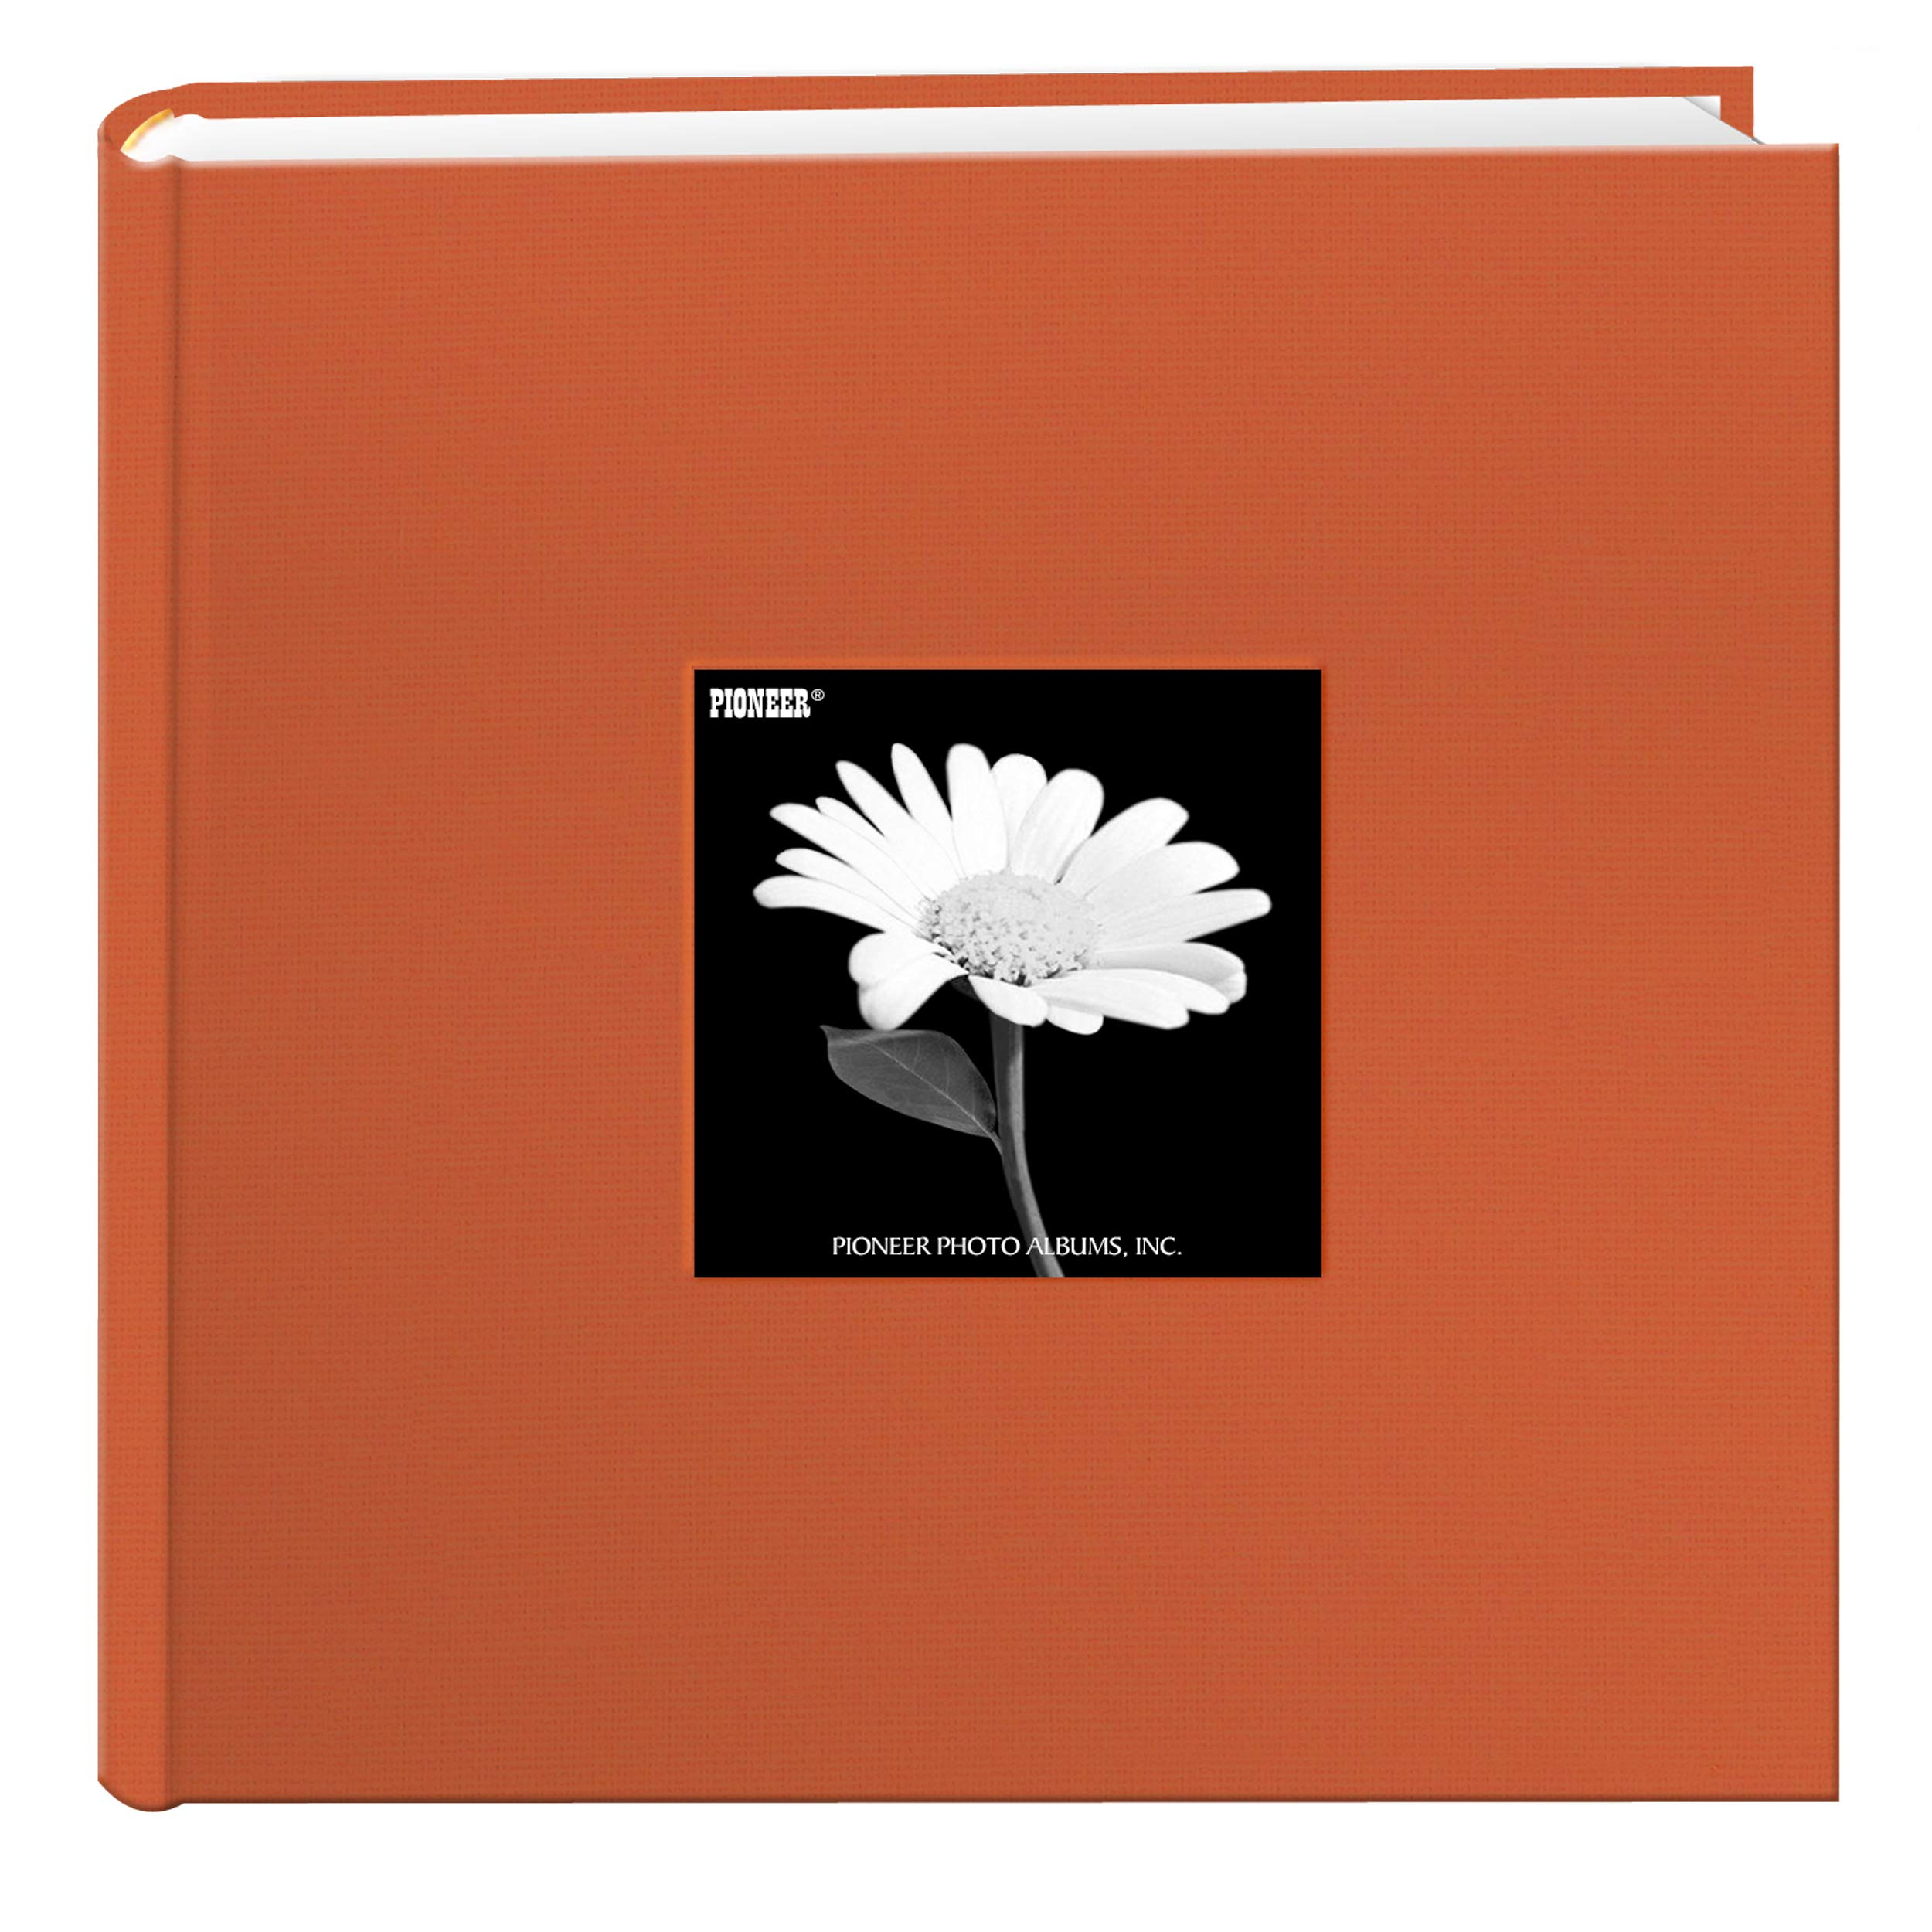 Fabric Frame Cover Photo Album 200 Pockets Hold 4x6 Photos, Tangerine Orange by Pioneer Photo Albums